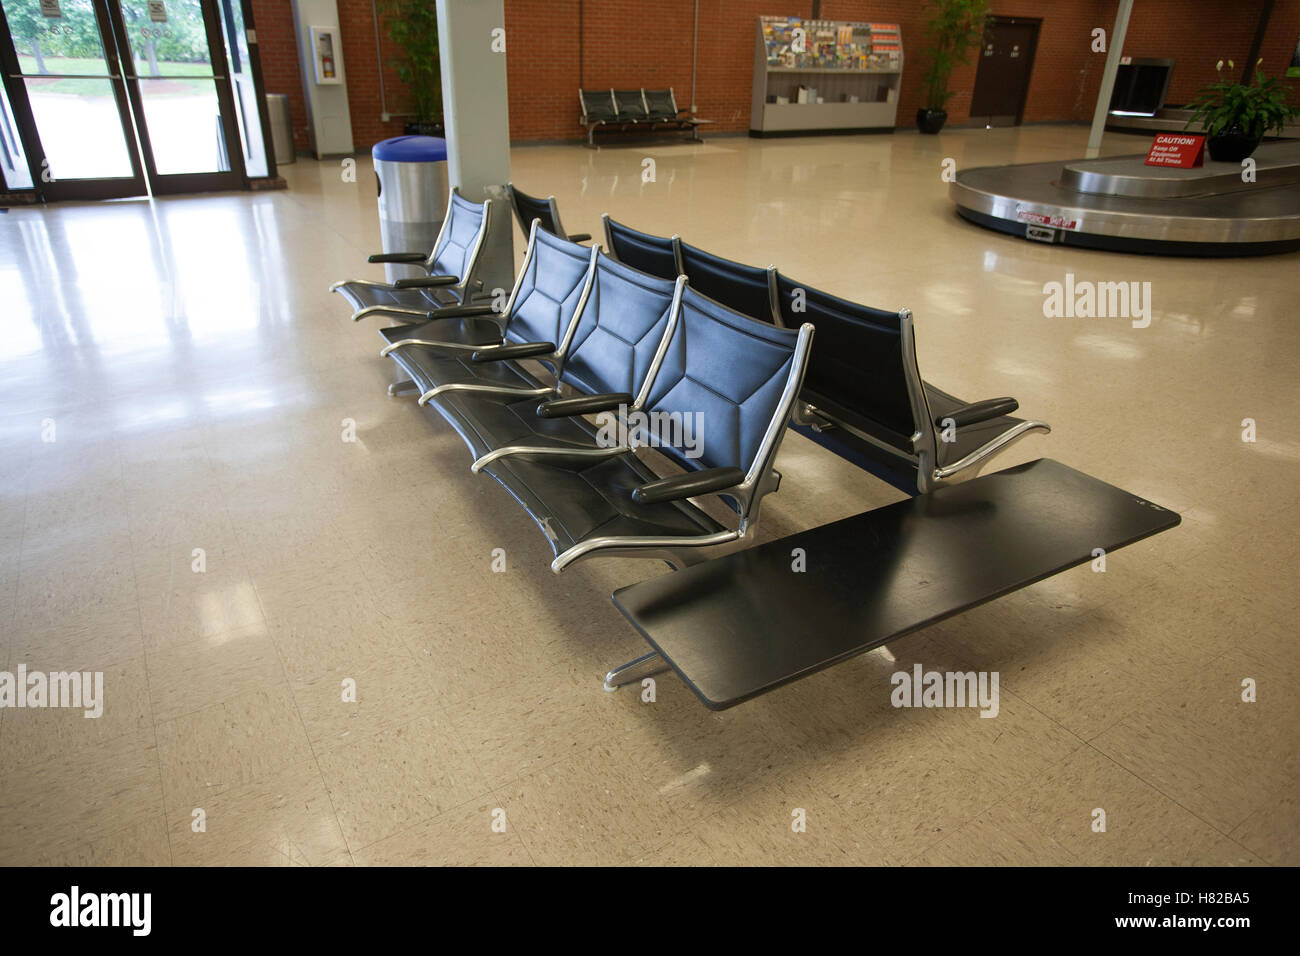 Plenty of room to sit in an airport luggage claim area - Stock Image